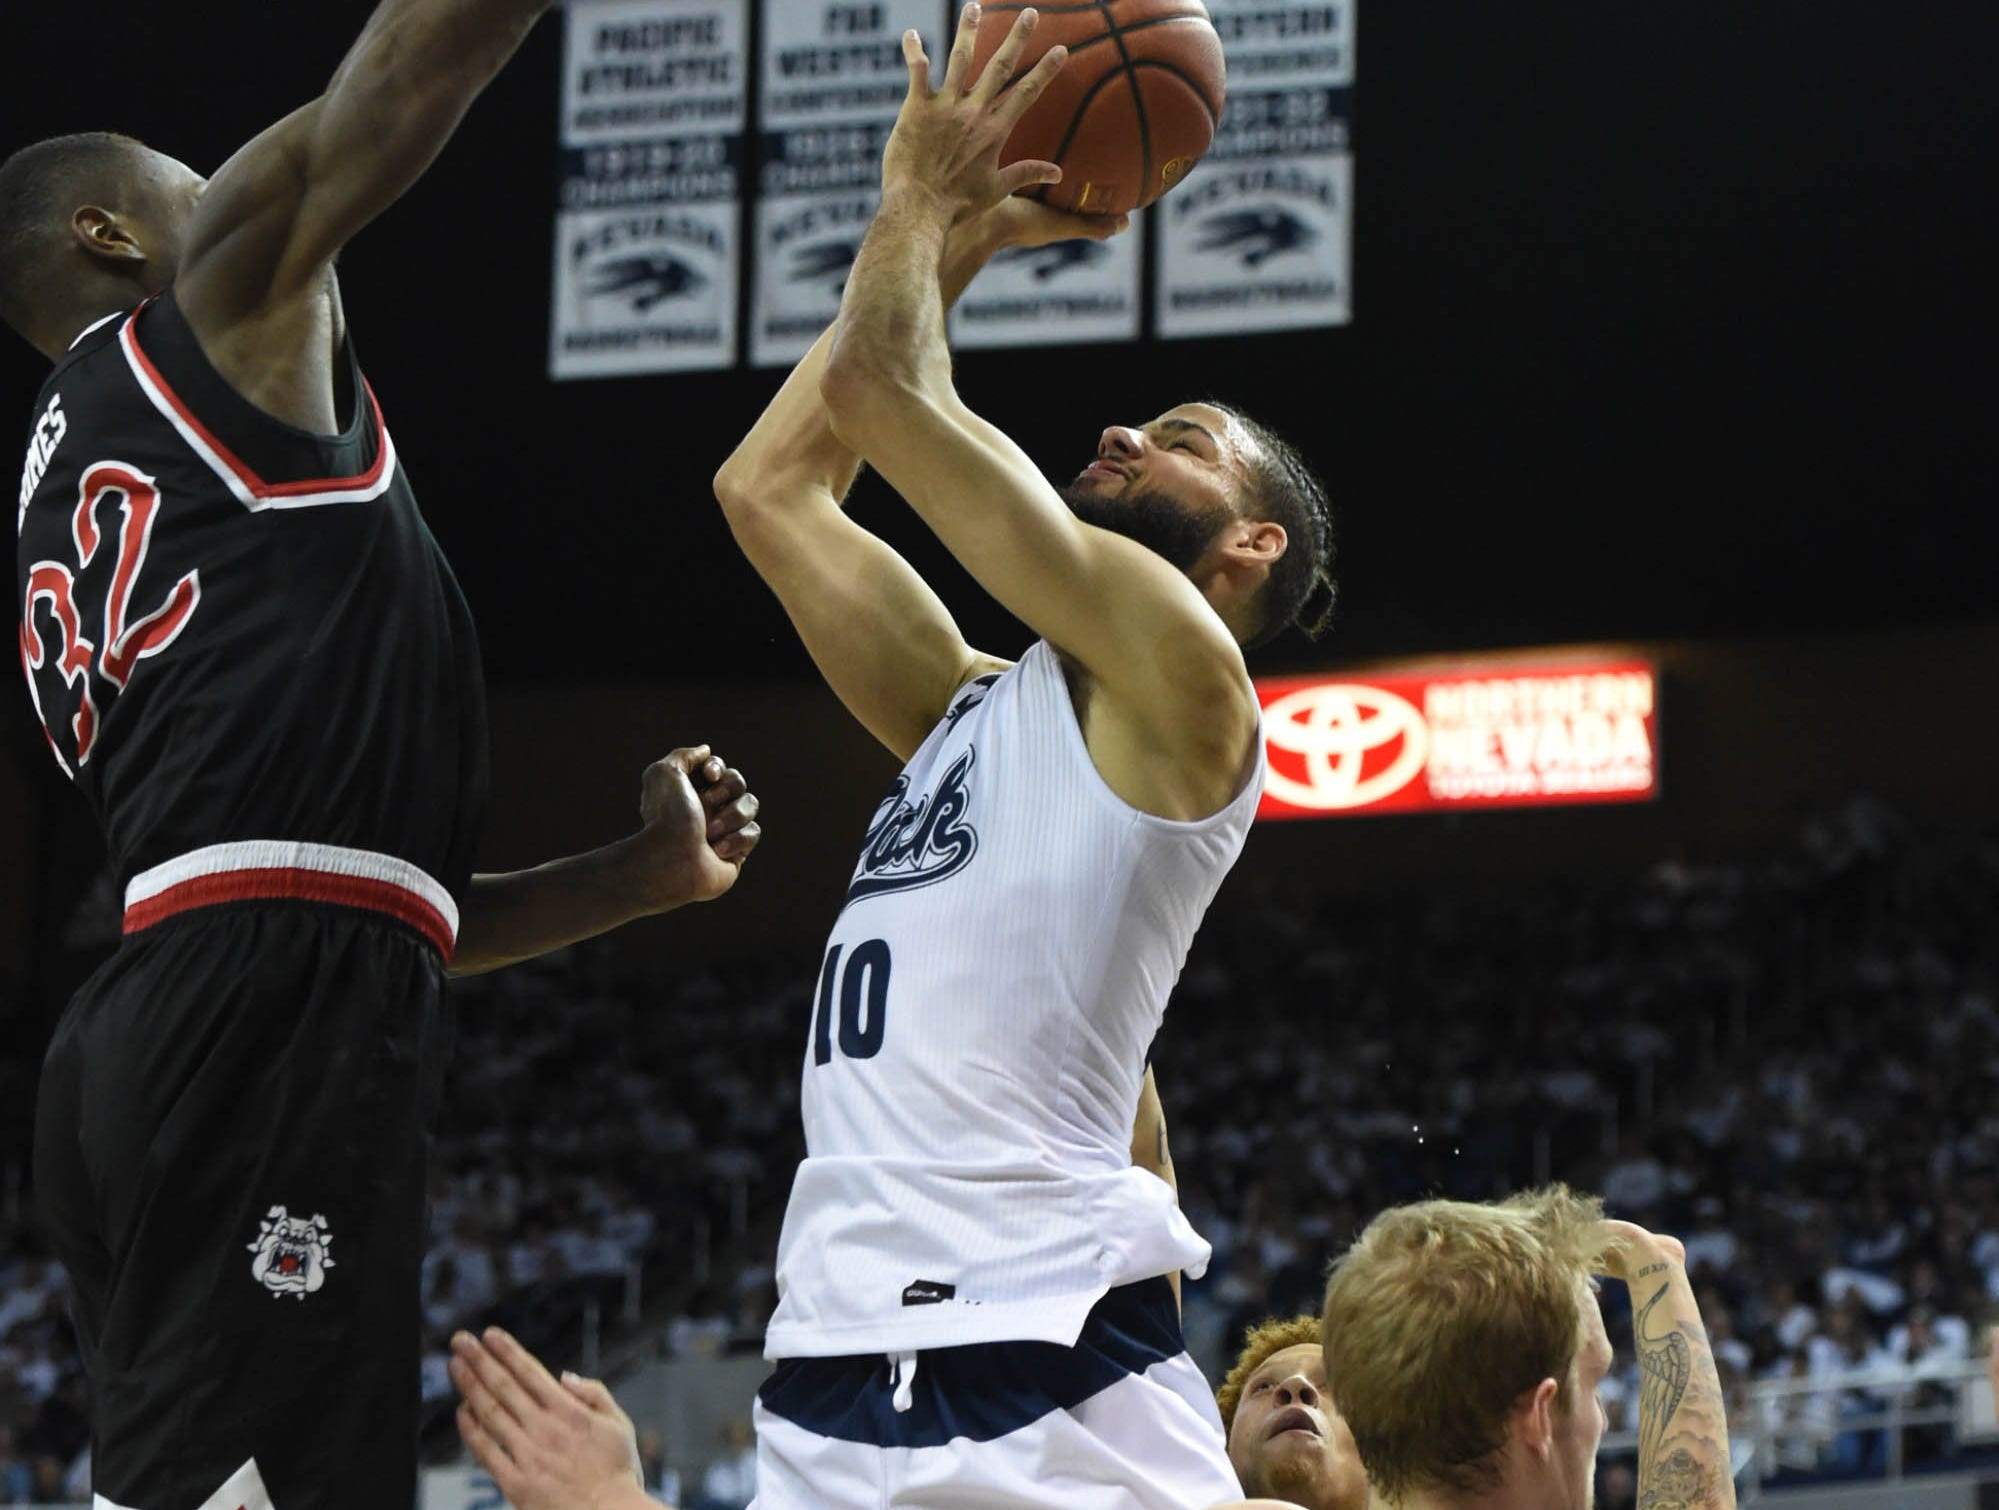 Images from the Fresno State at Nevada on Saturday Feb. 23, 2019